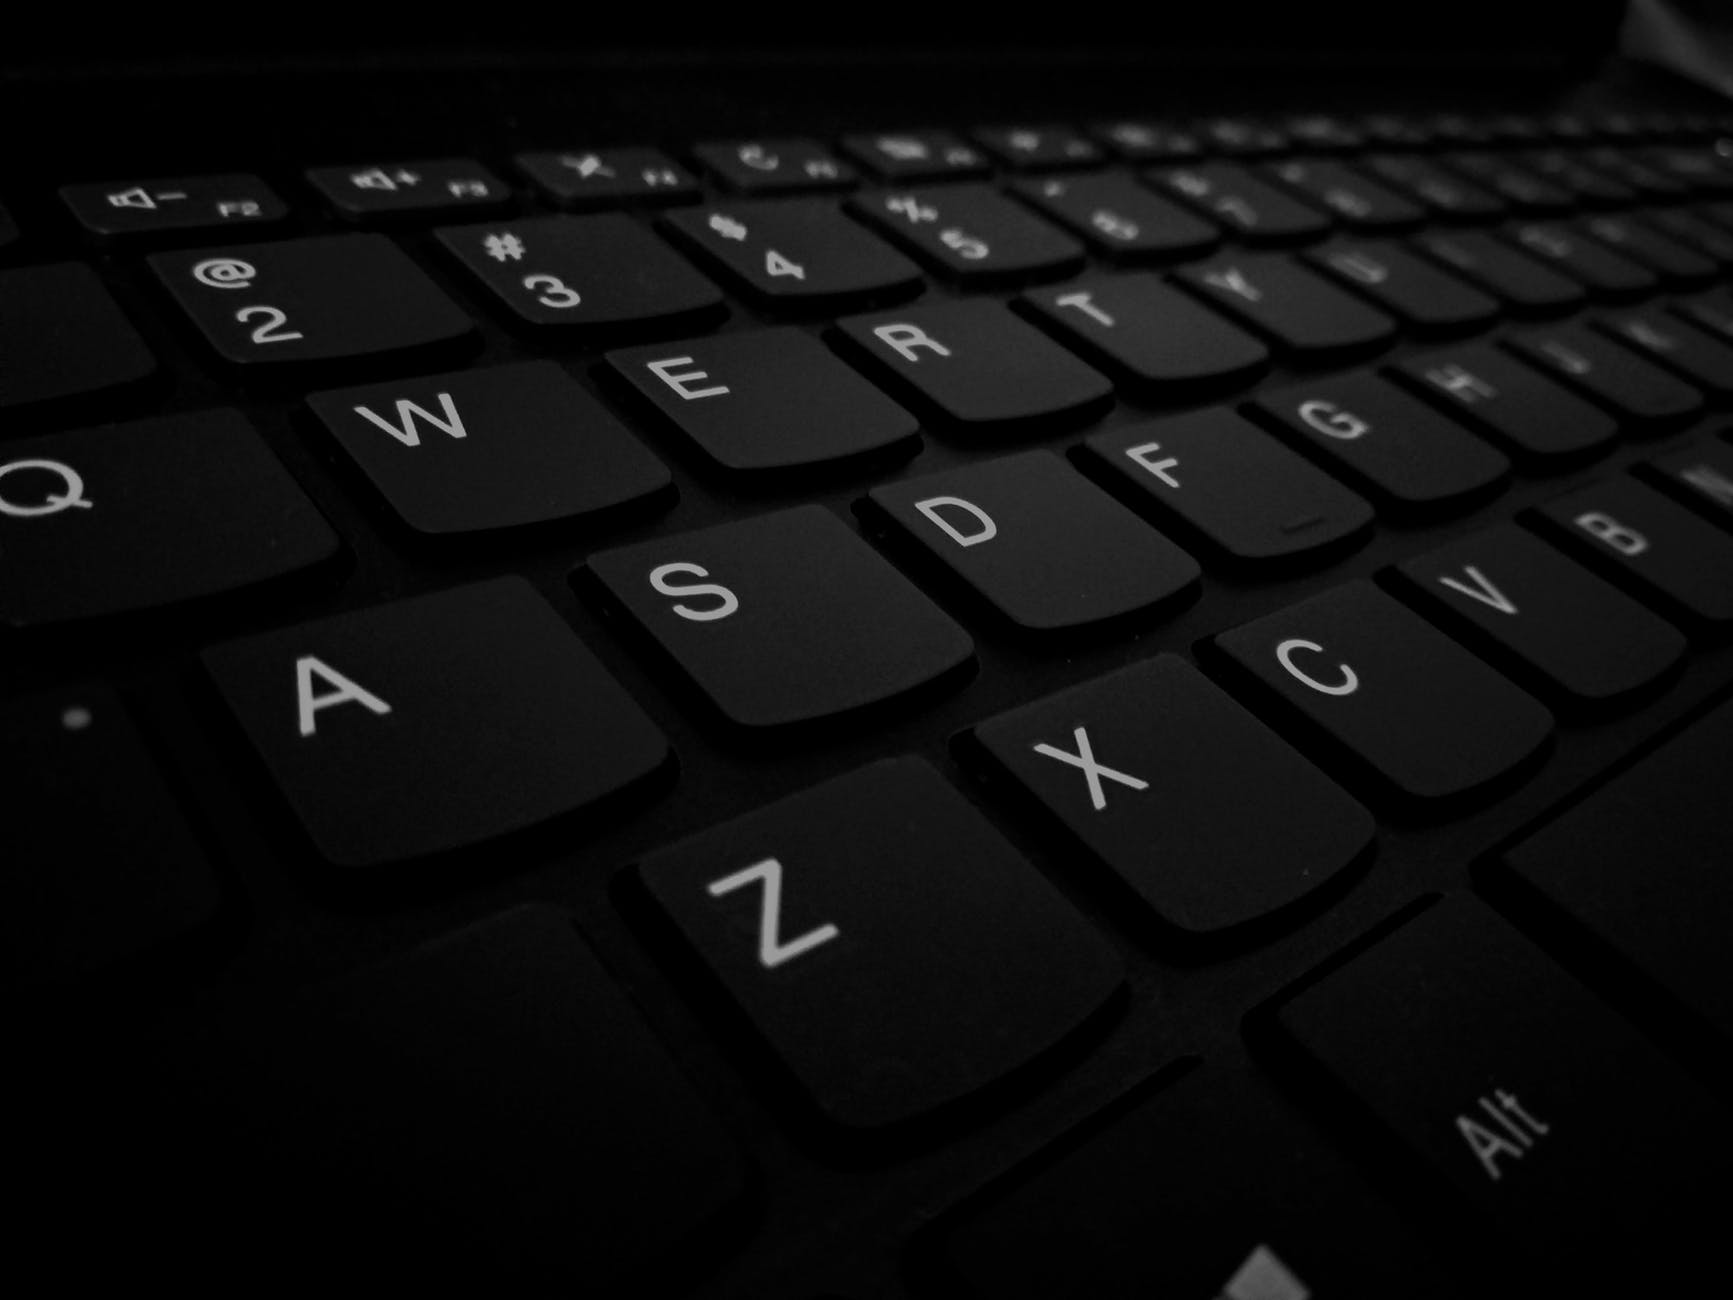 closeup photo of black computer keyboard s left side keys